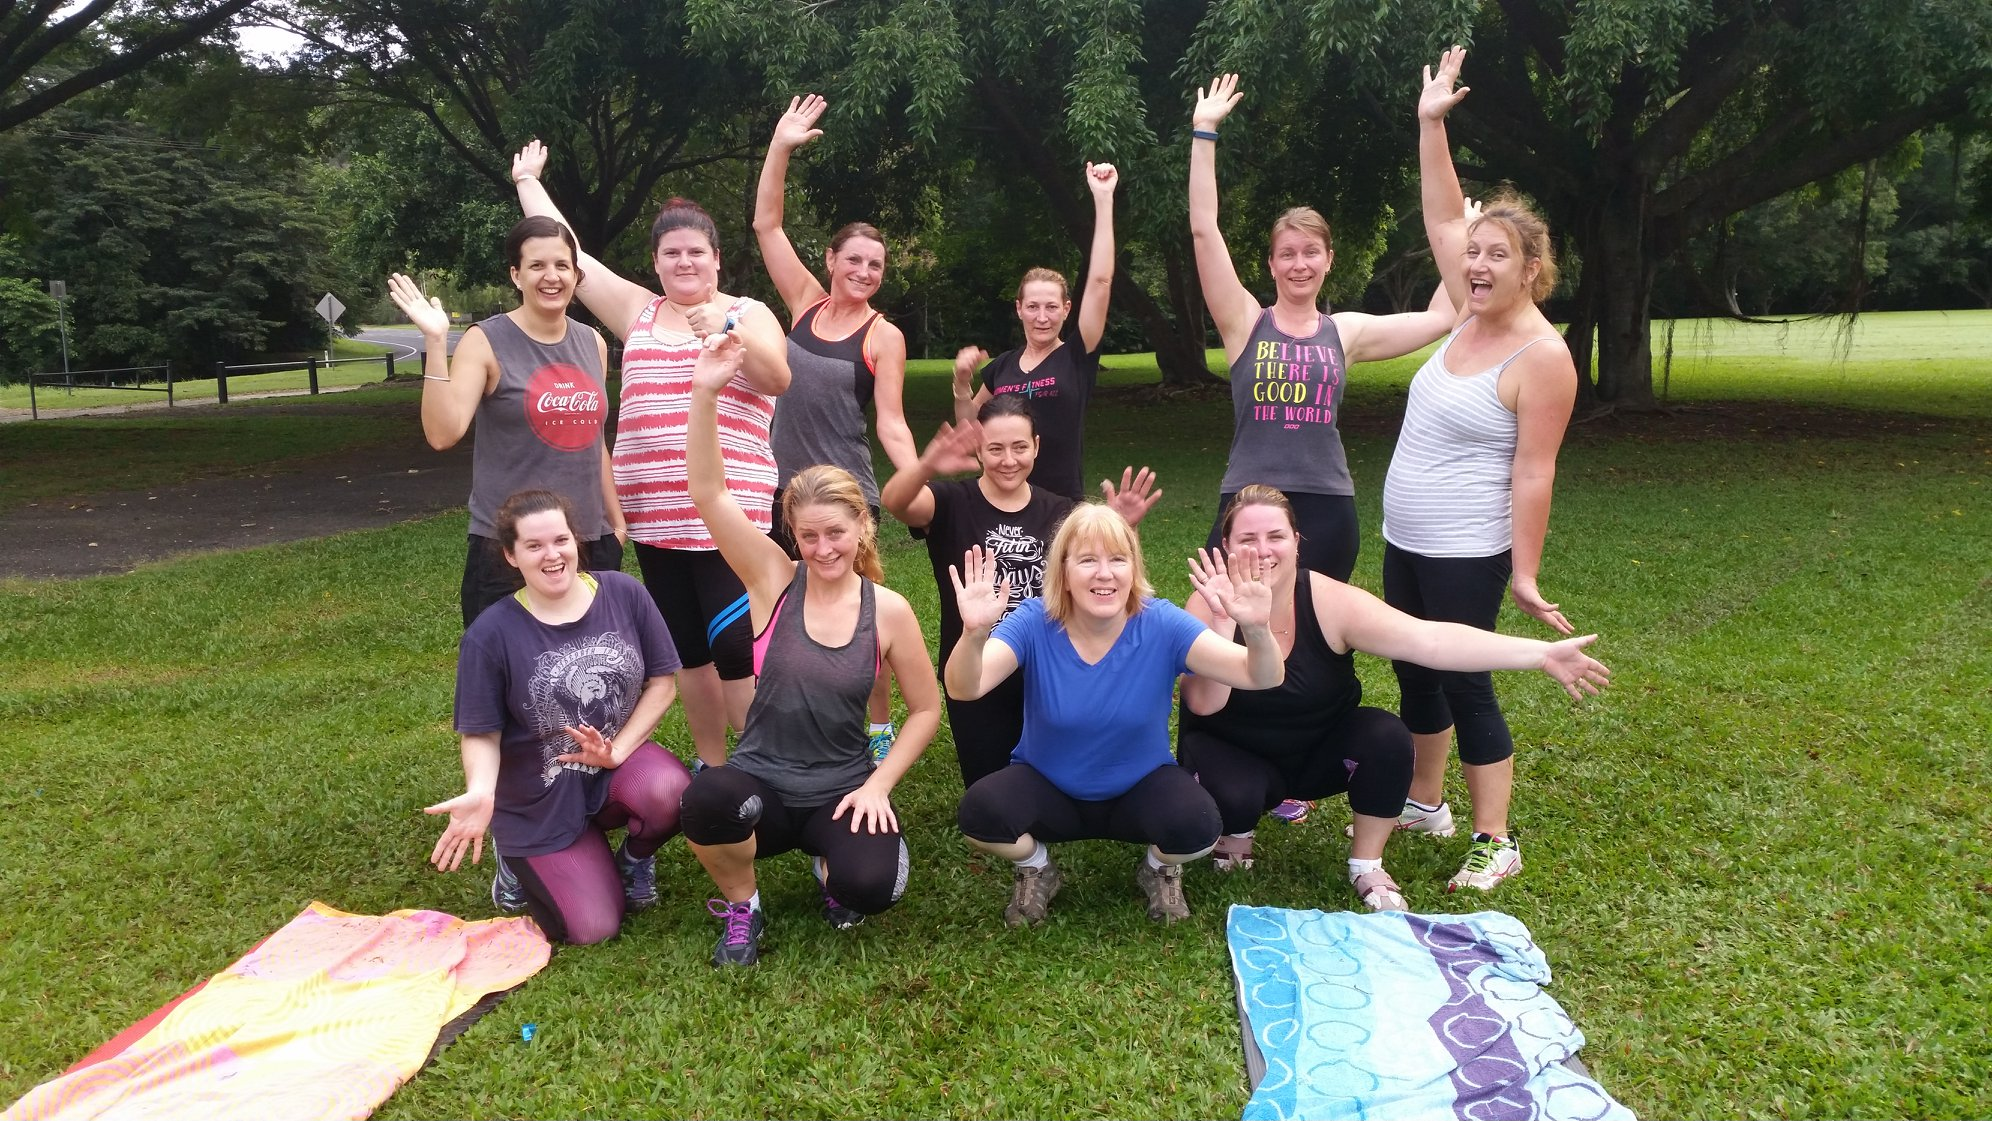 Women's Fitness For All – Mums And Bubs